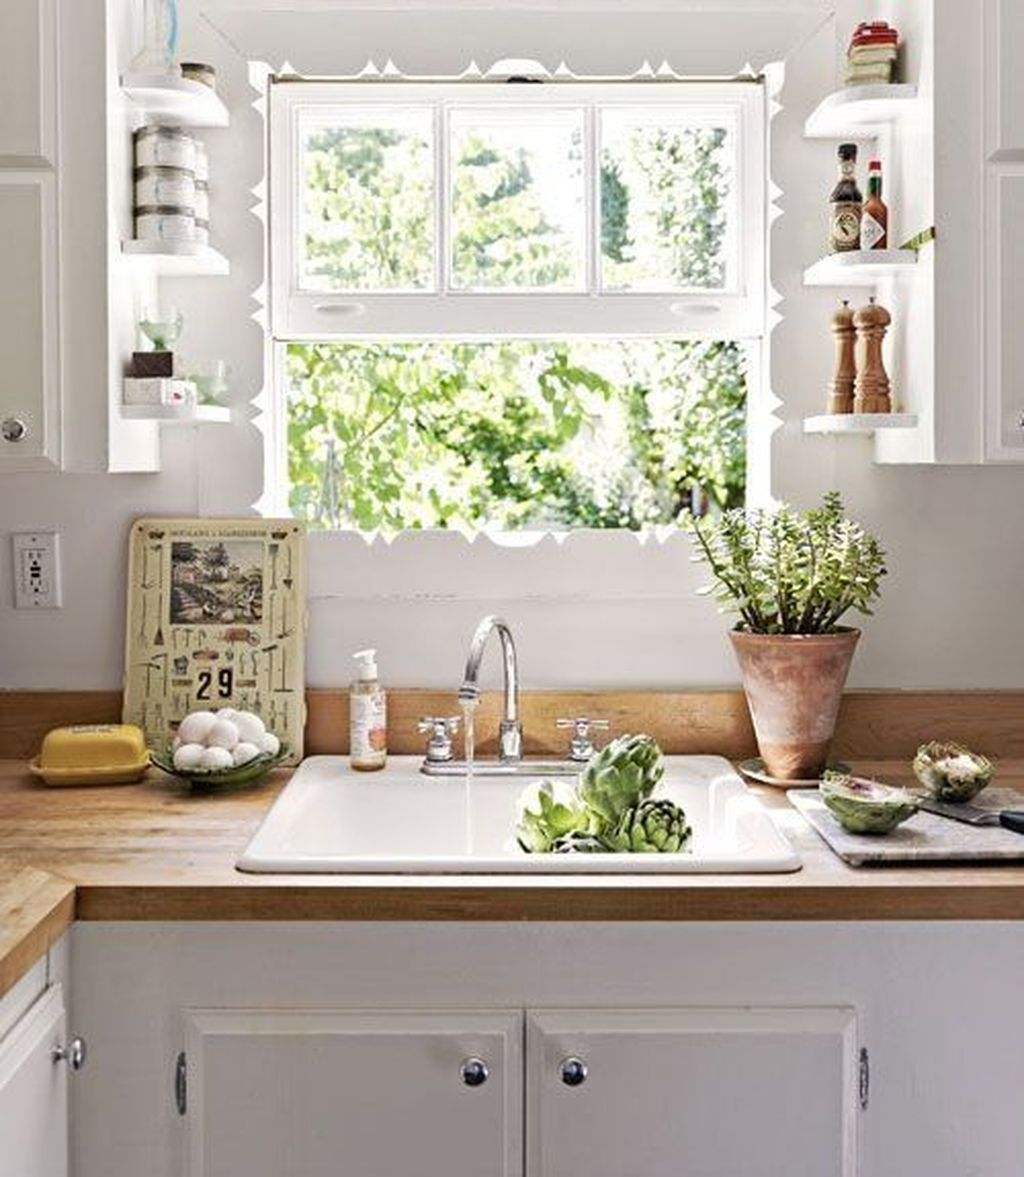 Small Kitchen Ideas With French Country Style 9   Kitchen design ...